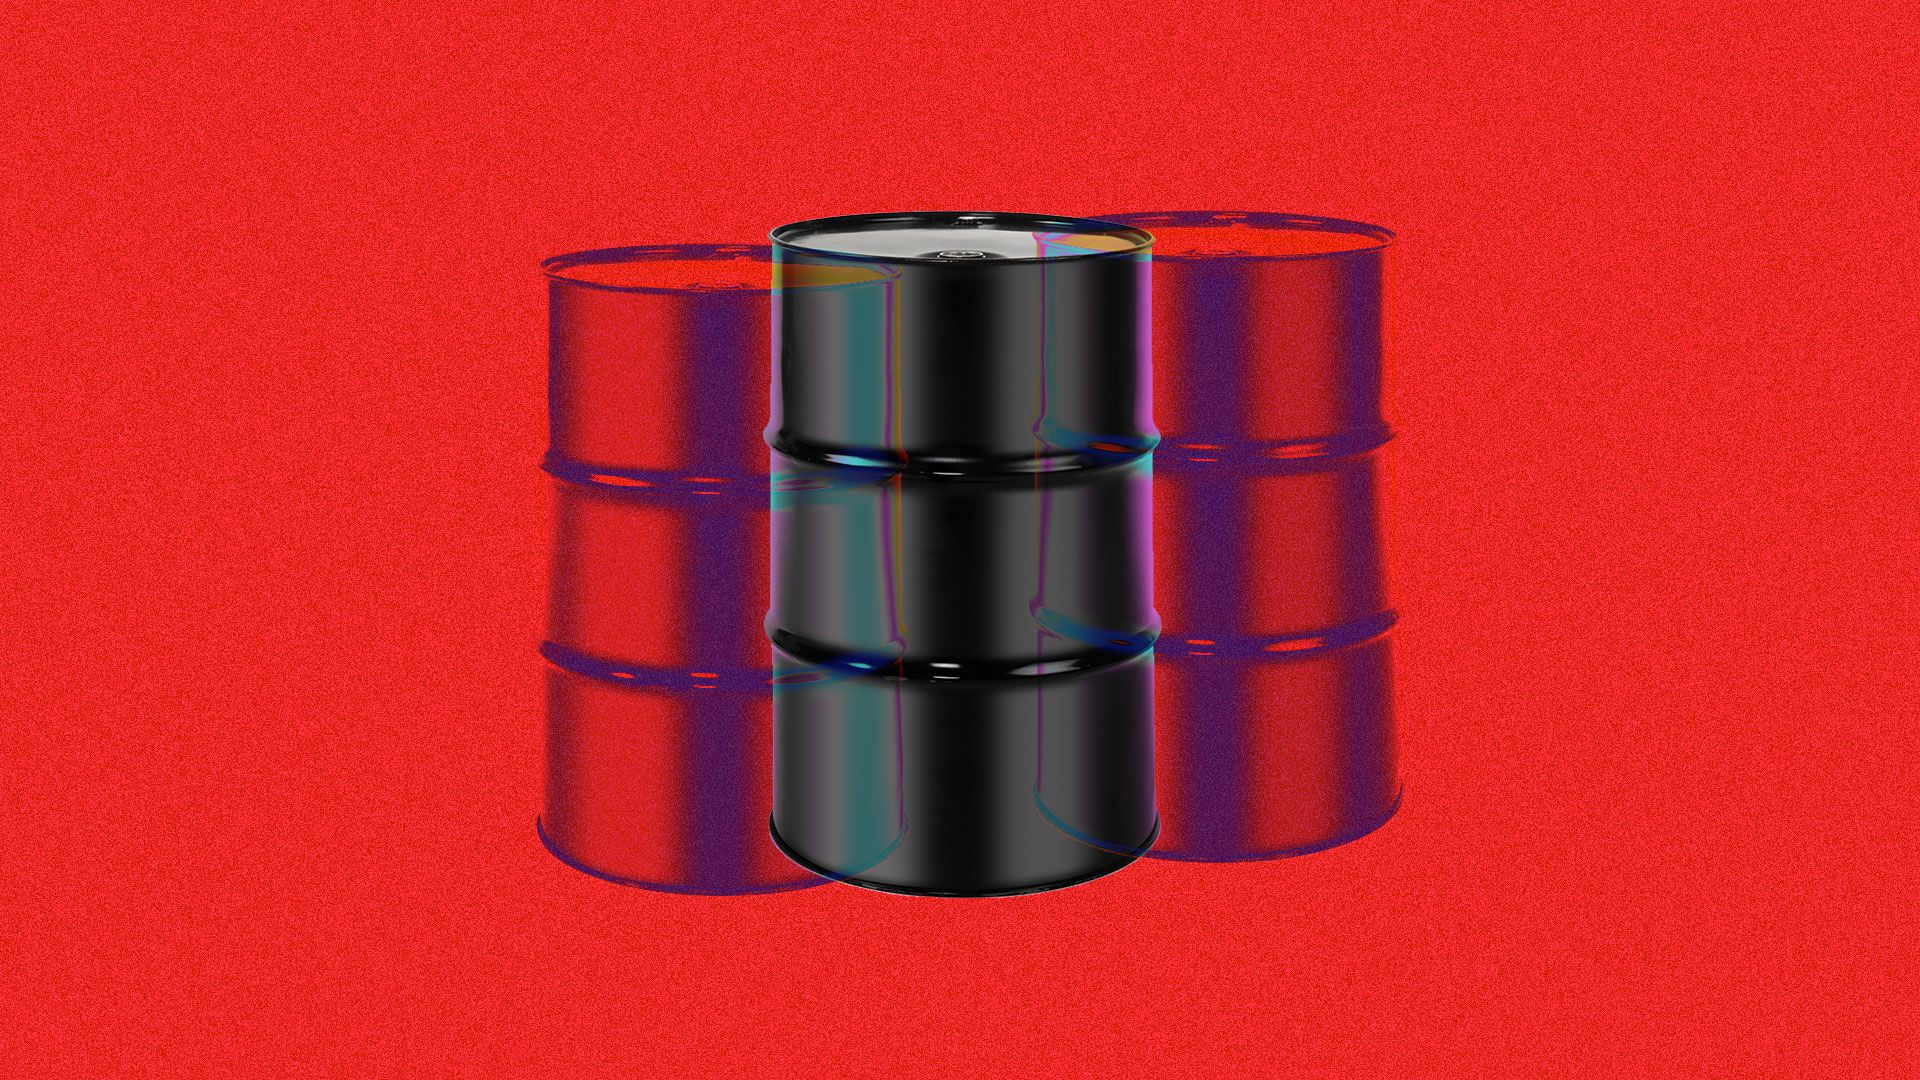 Illustration of an oil barrel seen double in psychedelic colors.